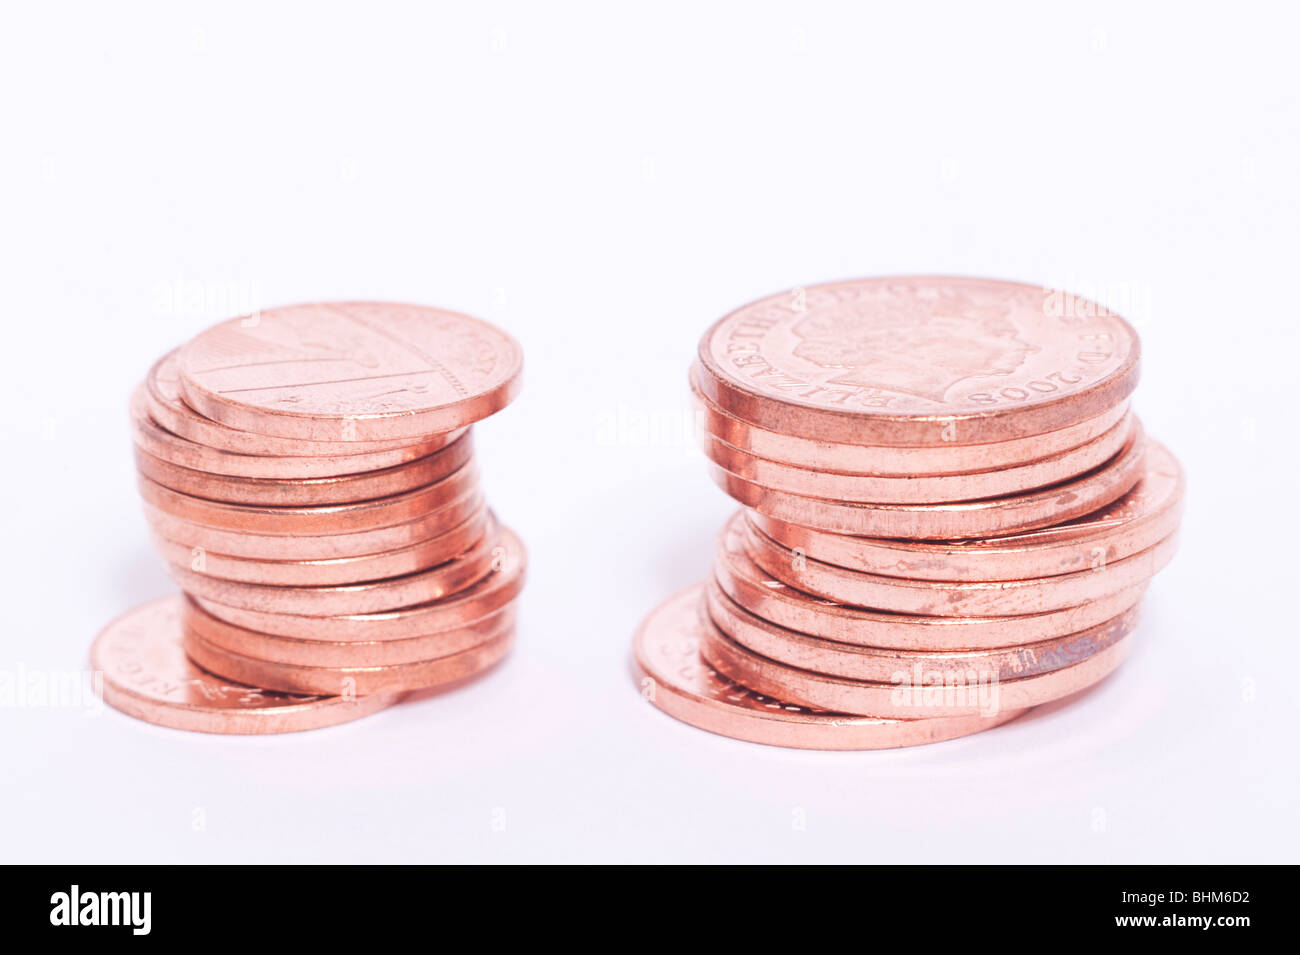 A selection of Uk currency coins ( 2 & 1 pence coppers ) on a white background - Stock Image